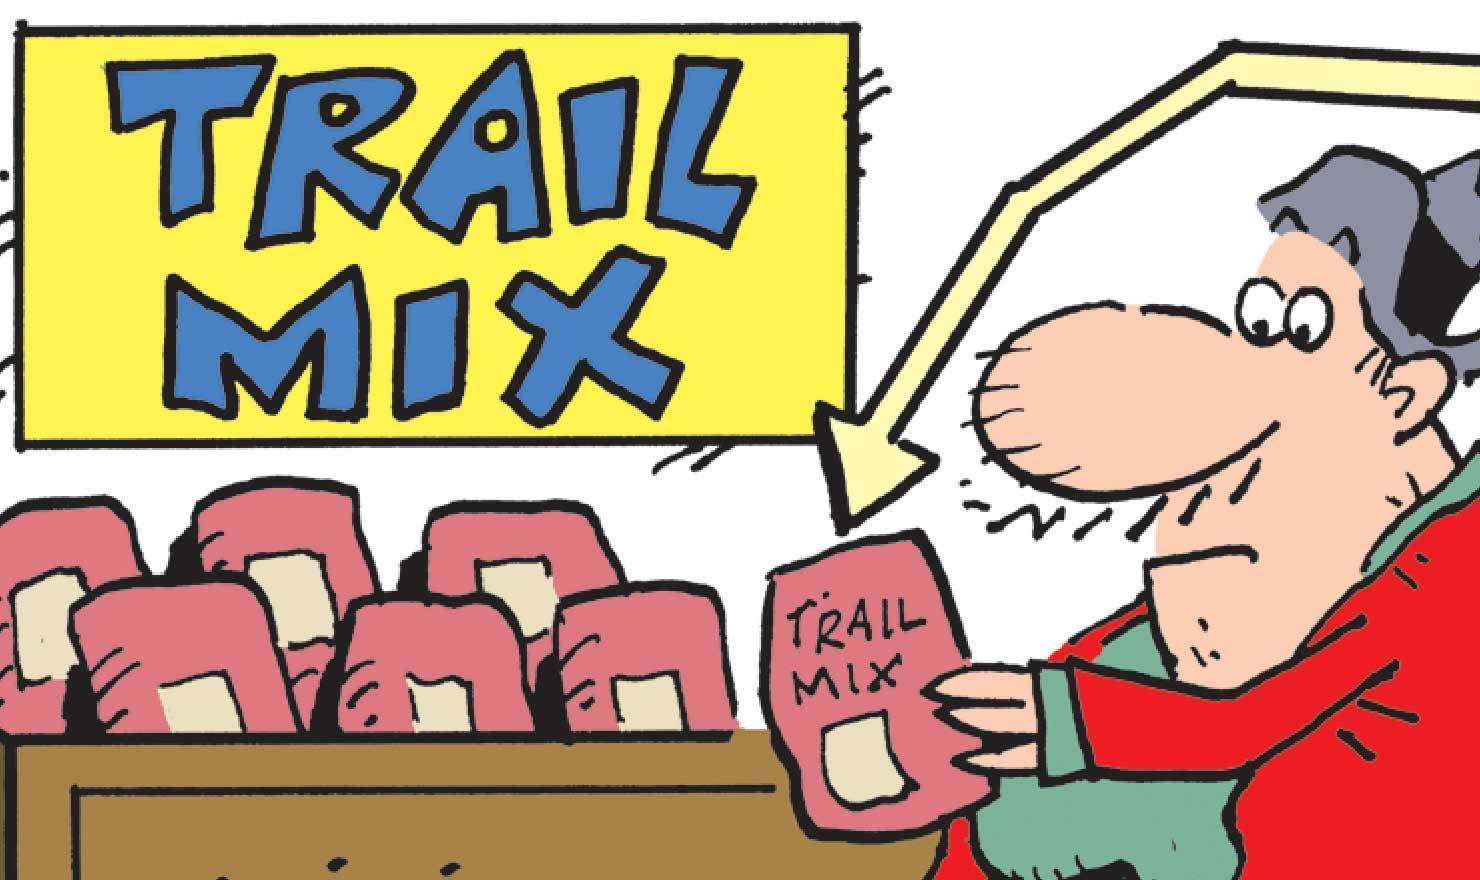 Trail Mix Day Comics Are a Snack For The Soul